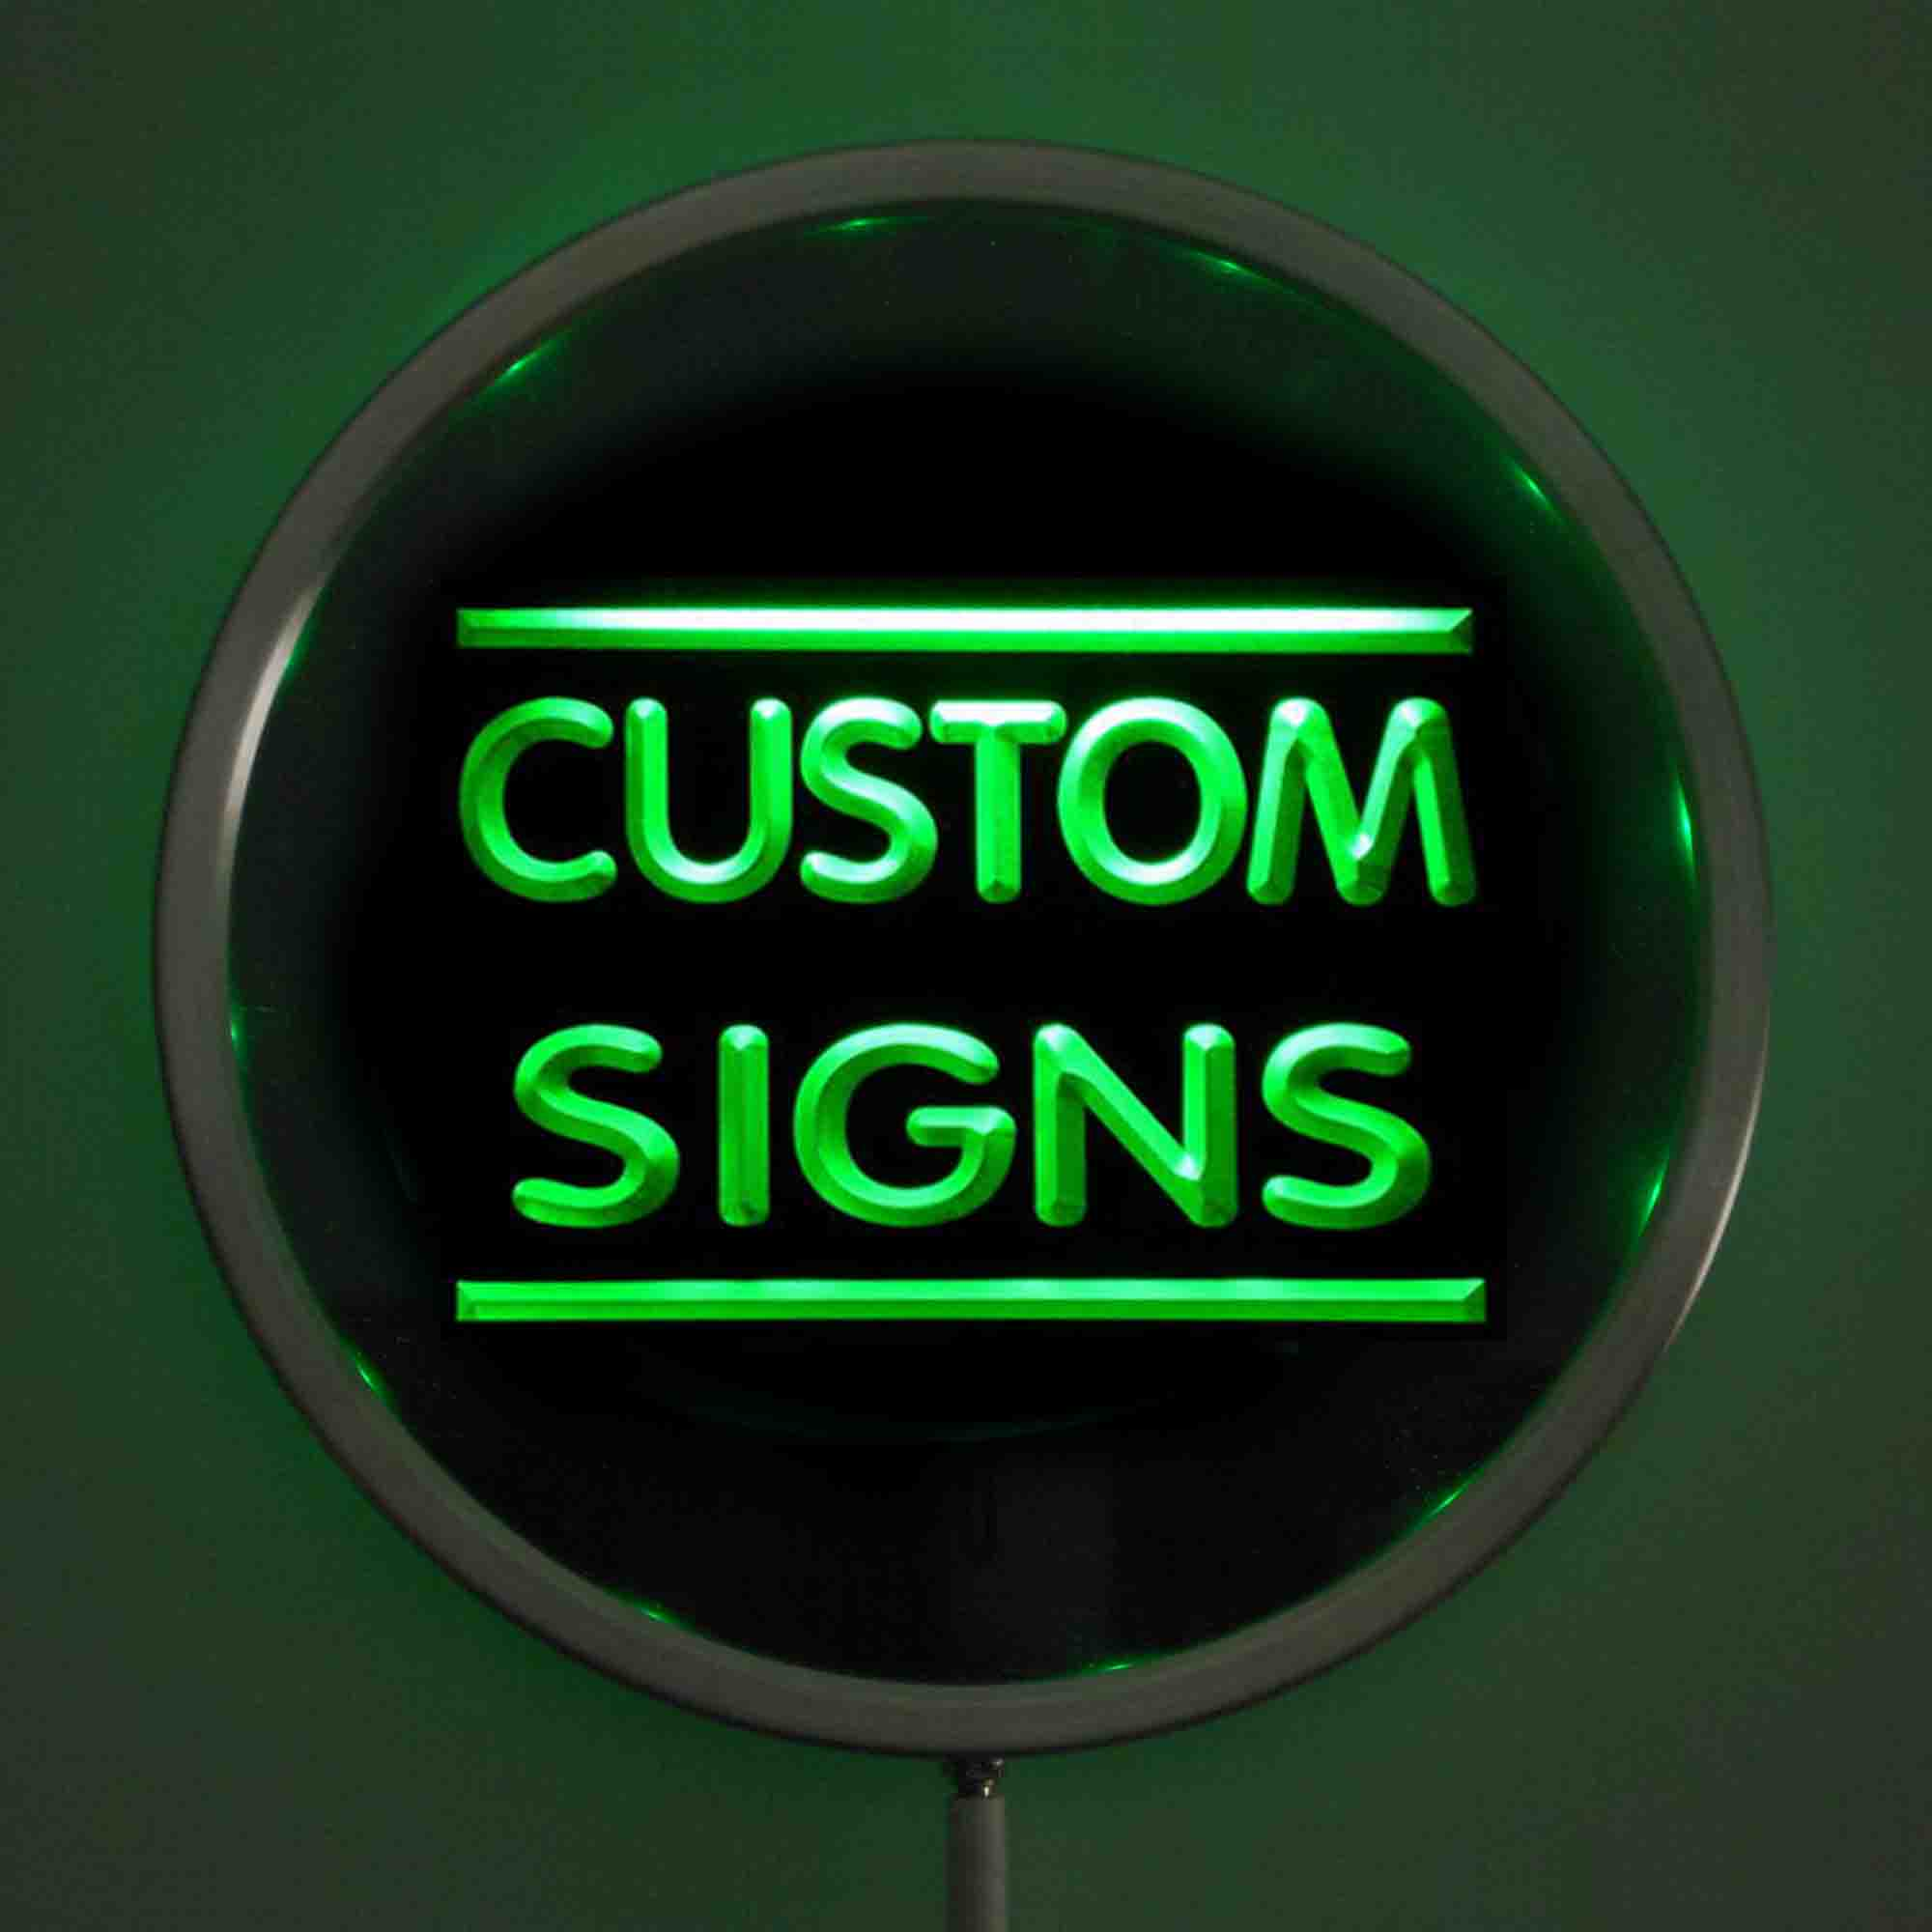 Circle Custom LED Neon Signs 25cm/ 10 Inch - Design Your Own Round LED Signs With RGB Multi-Color Remote Wireless Control